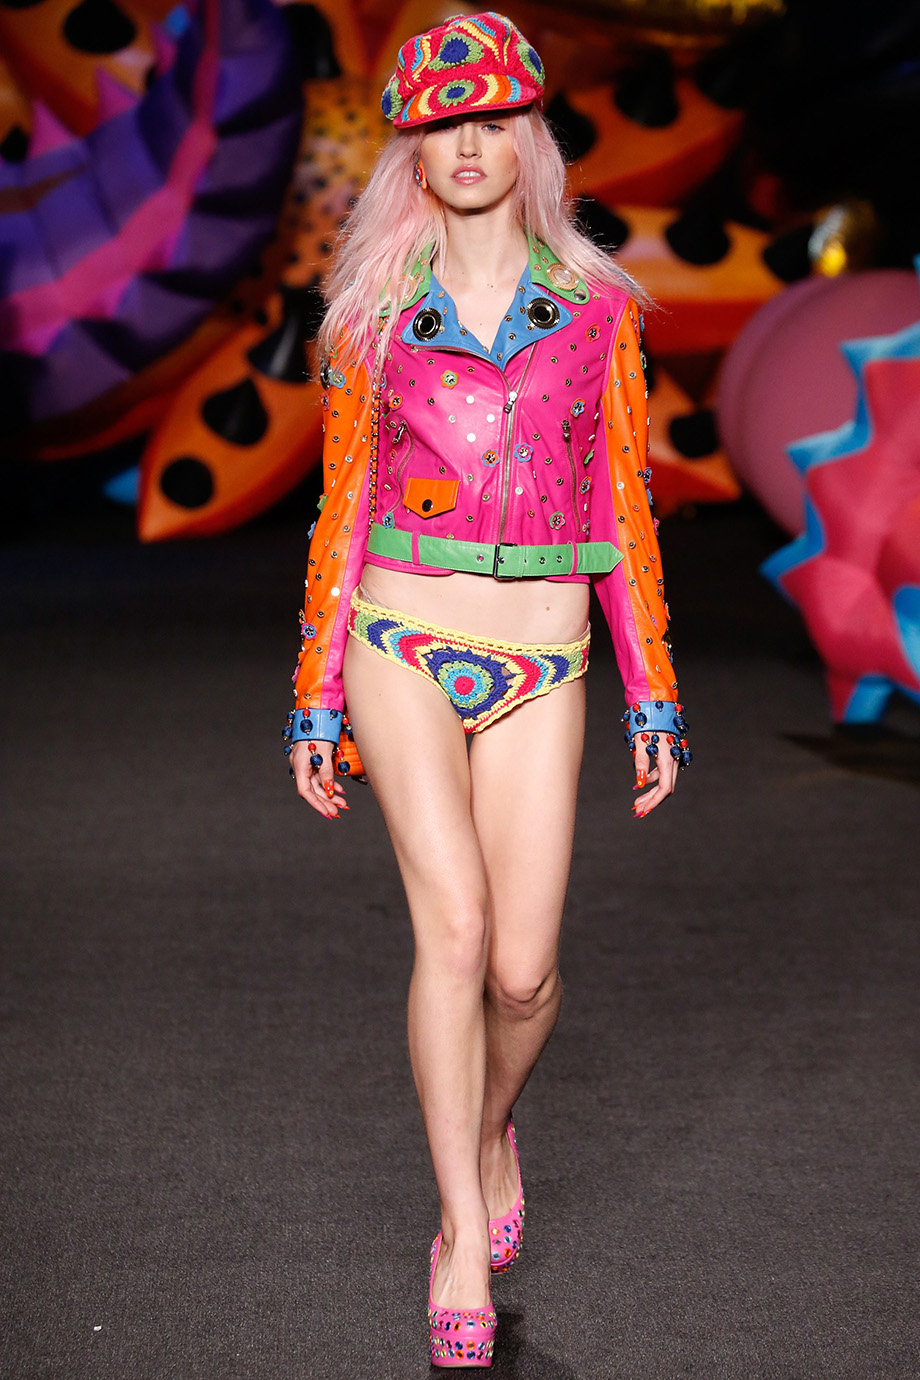 Spring fashion trends for women